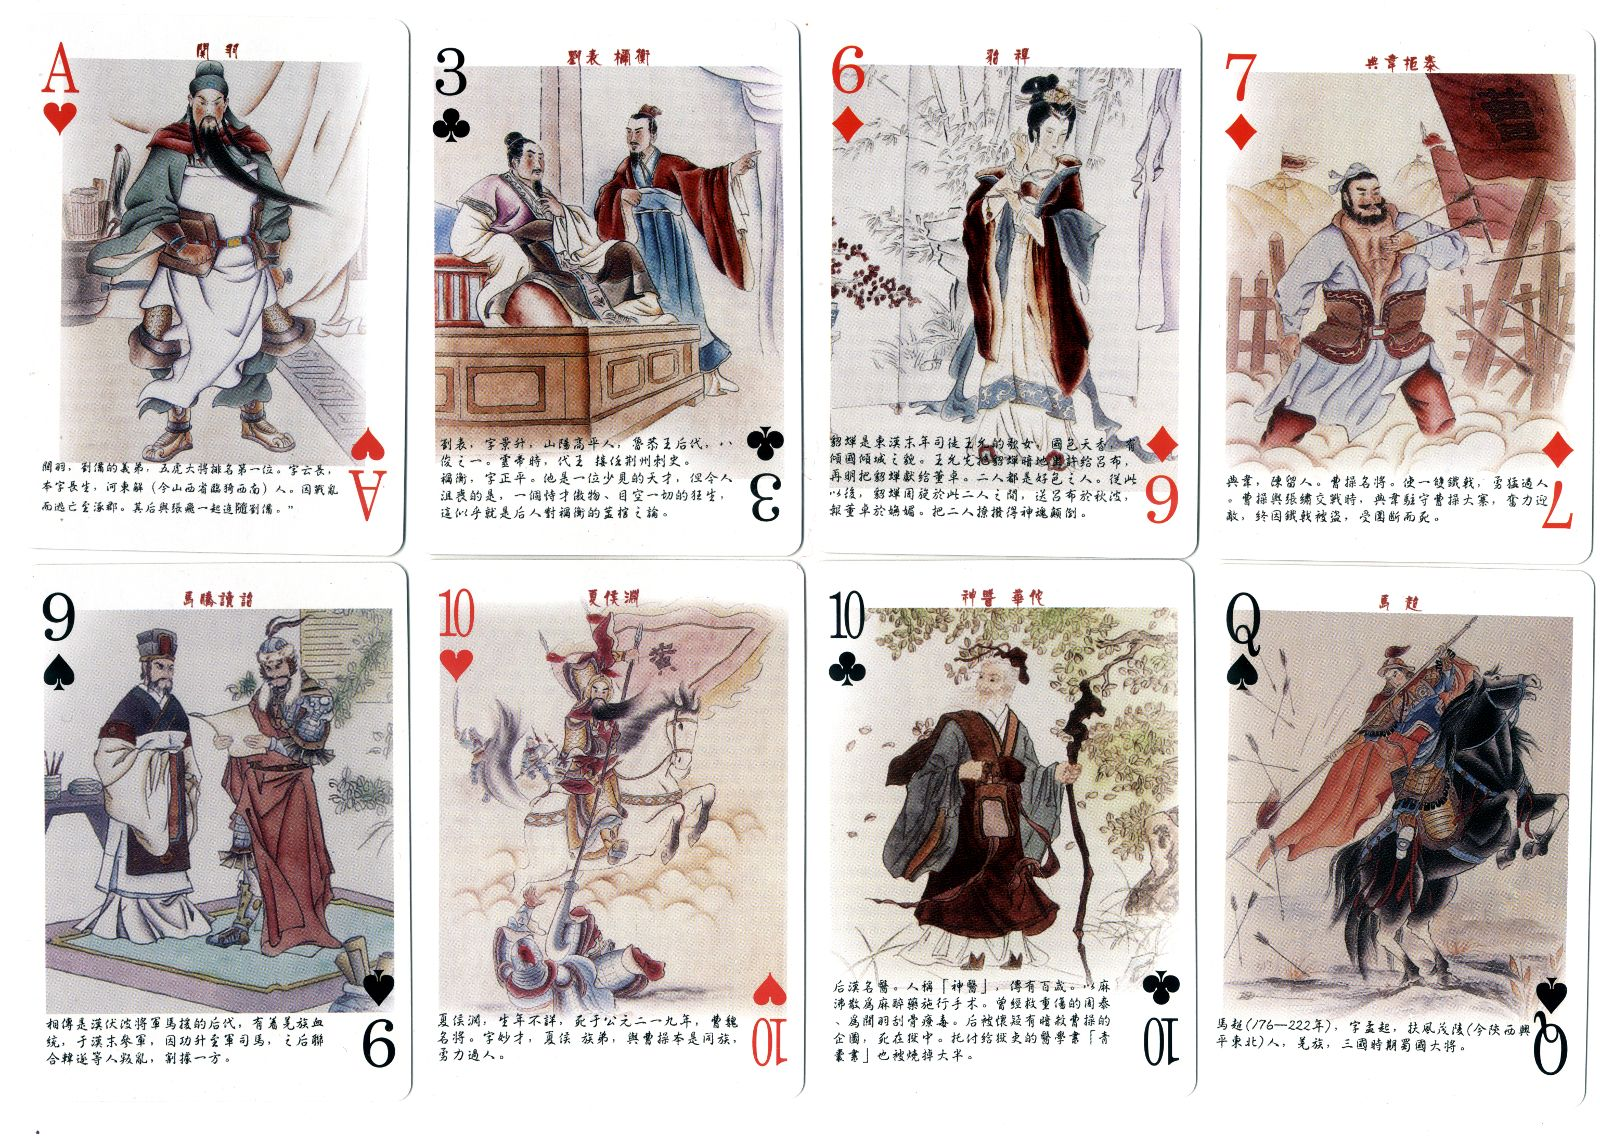 Three Kingdoms playing cards describing the story of the Three Kingdoms period of Chinese history